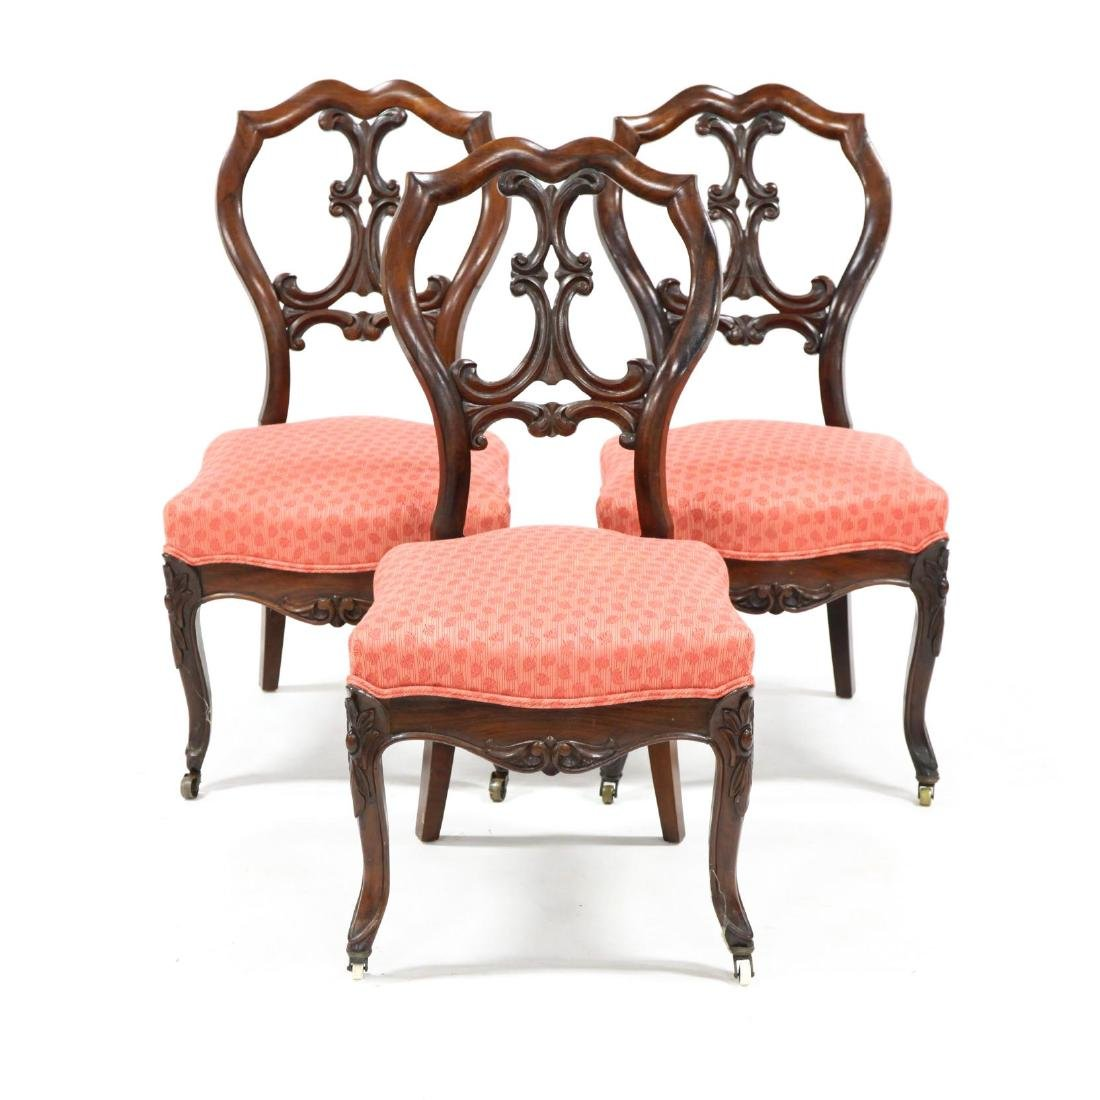 Set of Three English Rococo Revival Side Chairs